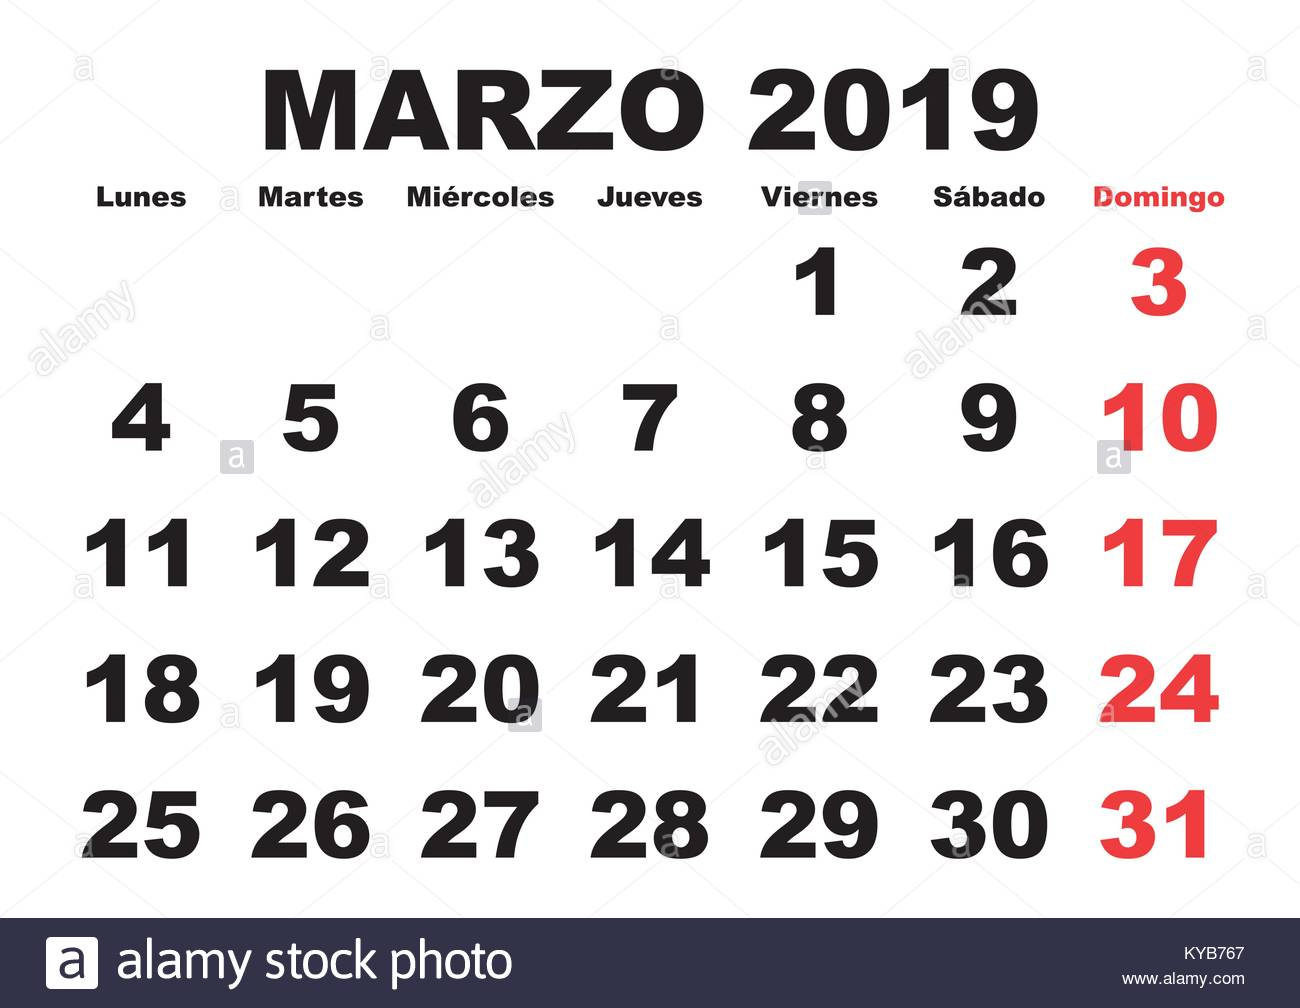 march month in a year 2019 wall calendar in spanish marzo 2019 calendario 2019